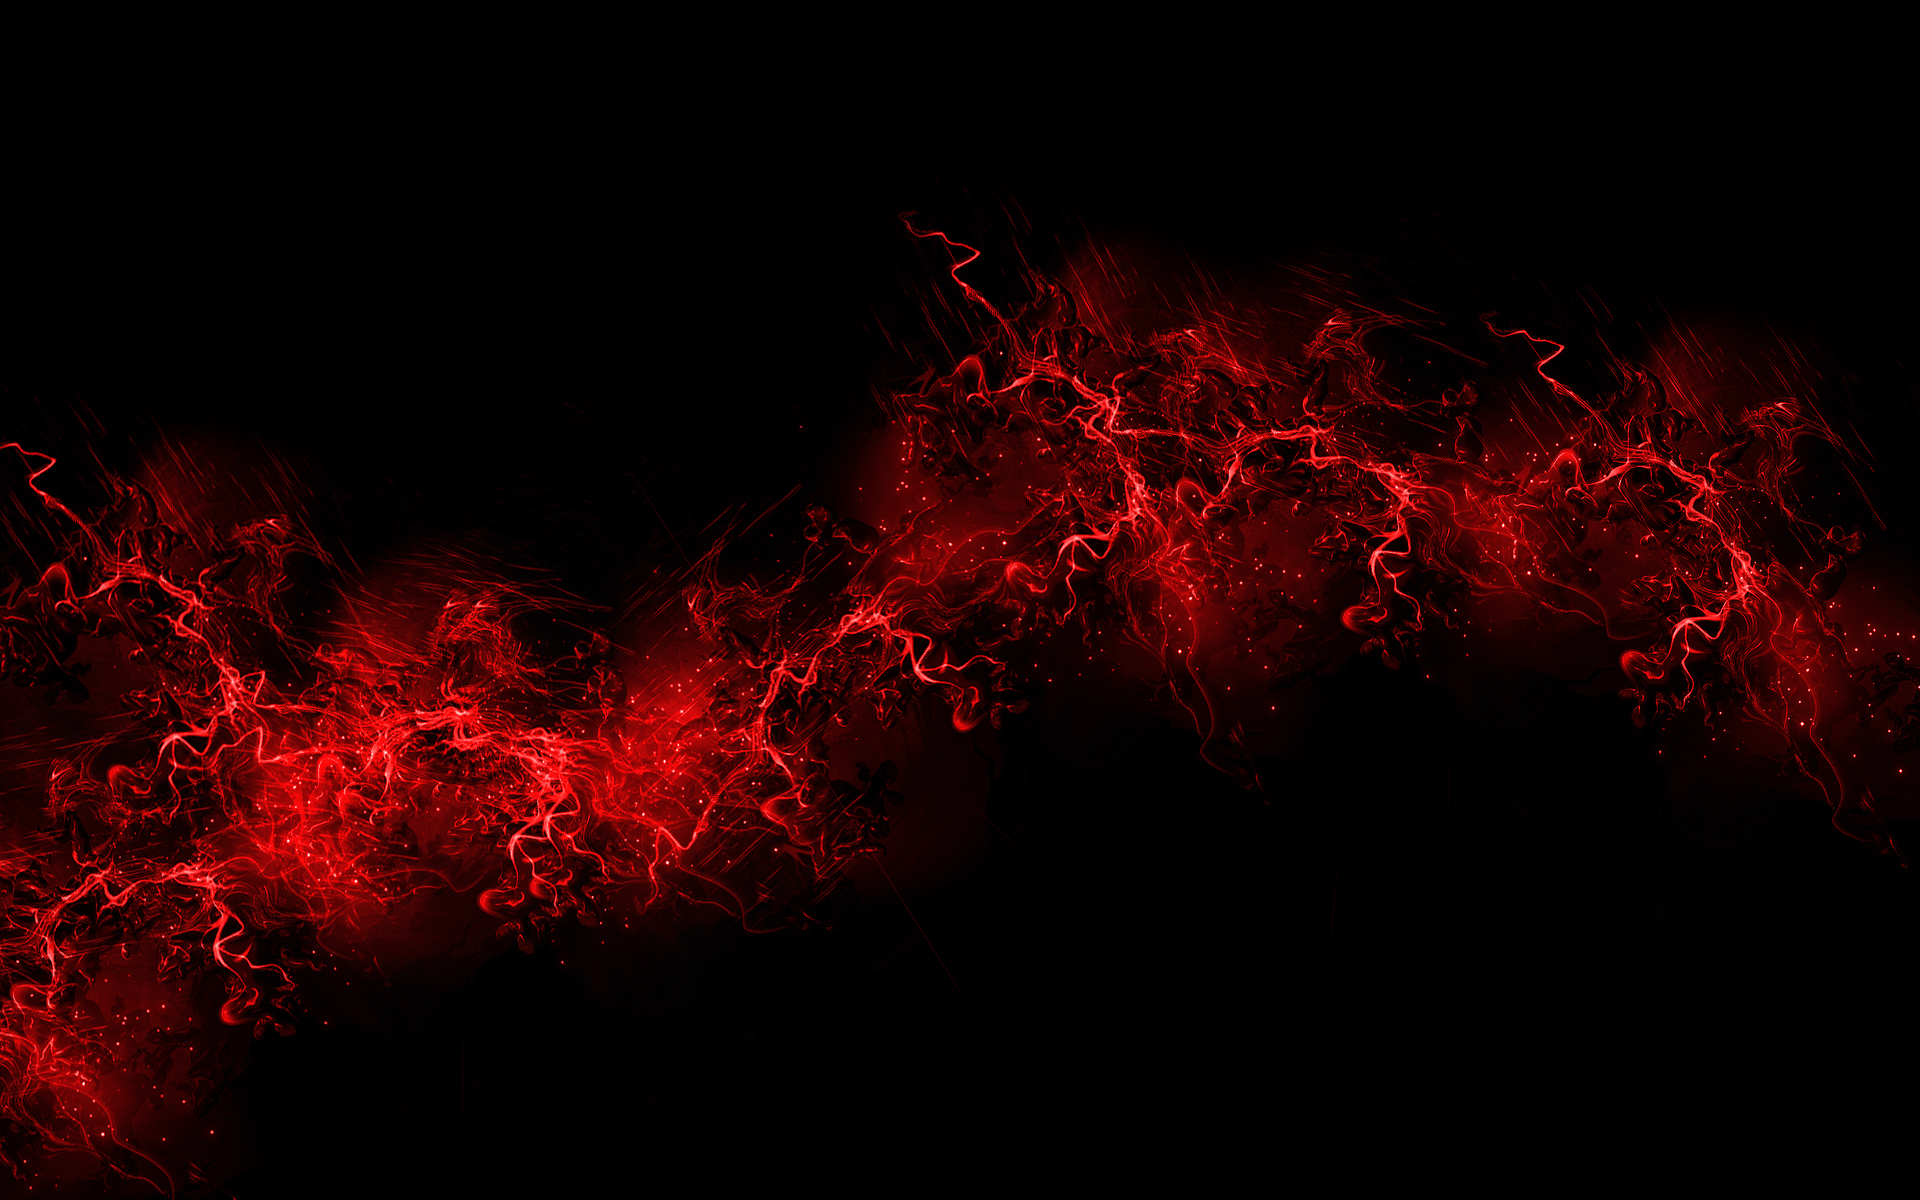 black background hd download Cool Red And Black Backgrounds 1920x1200